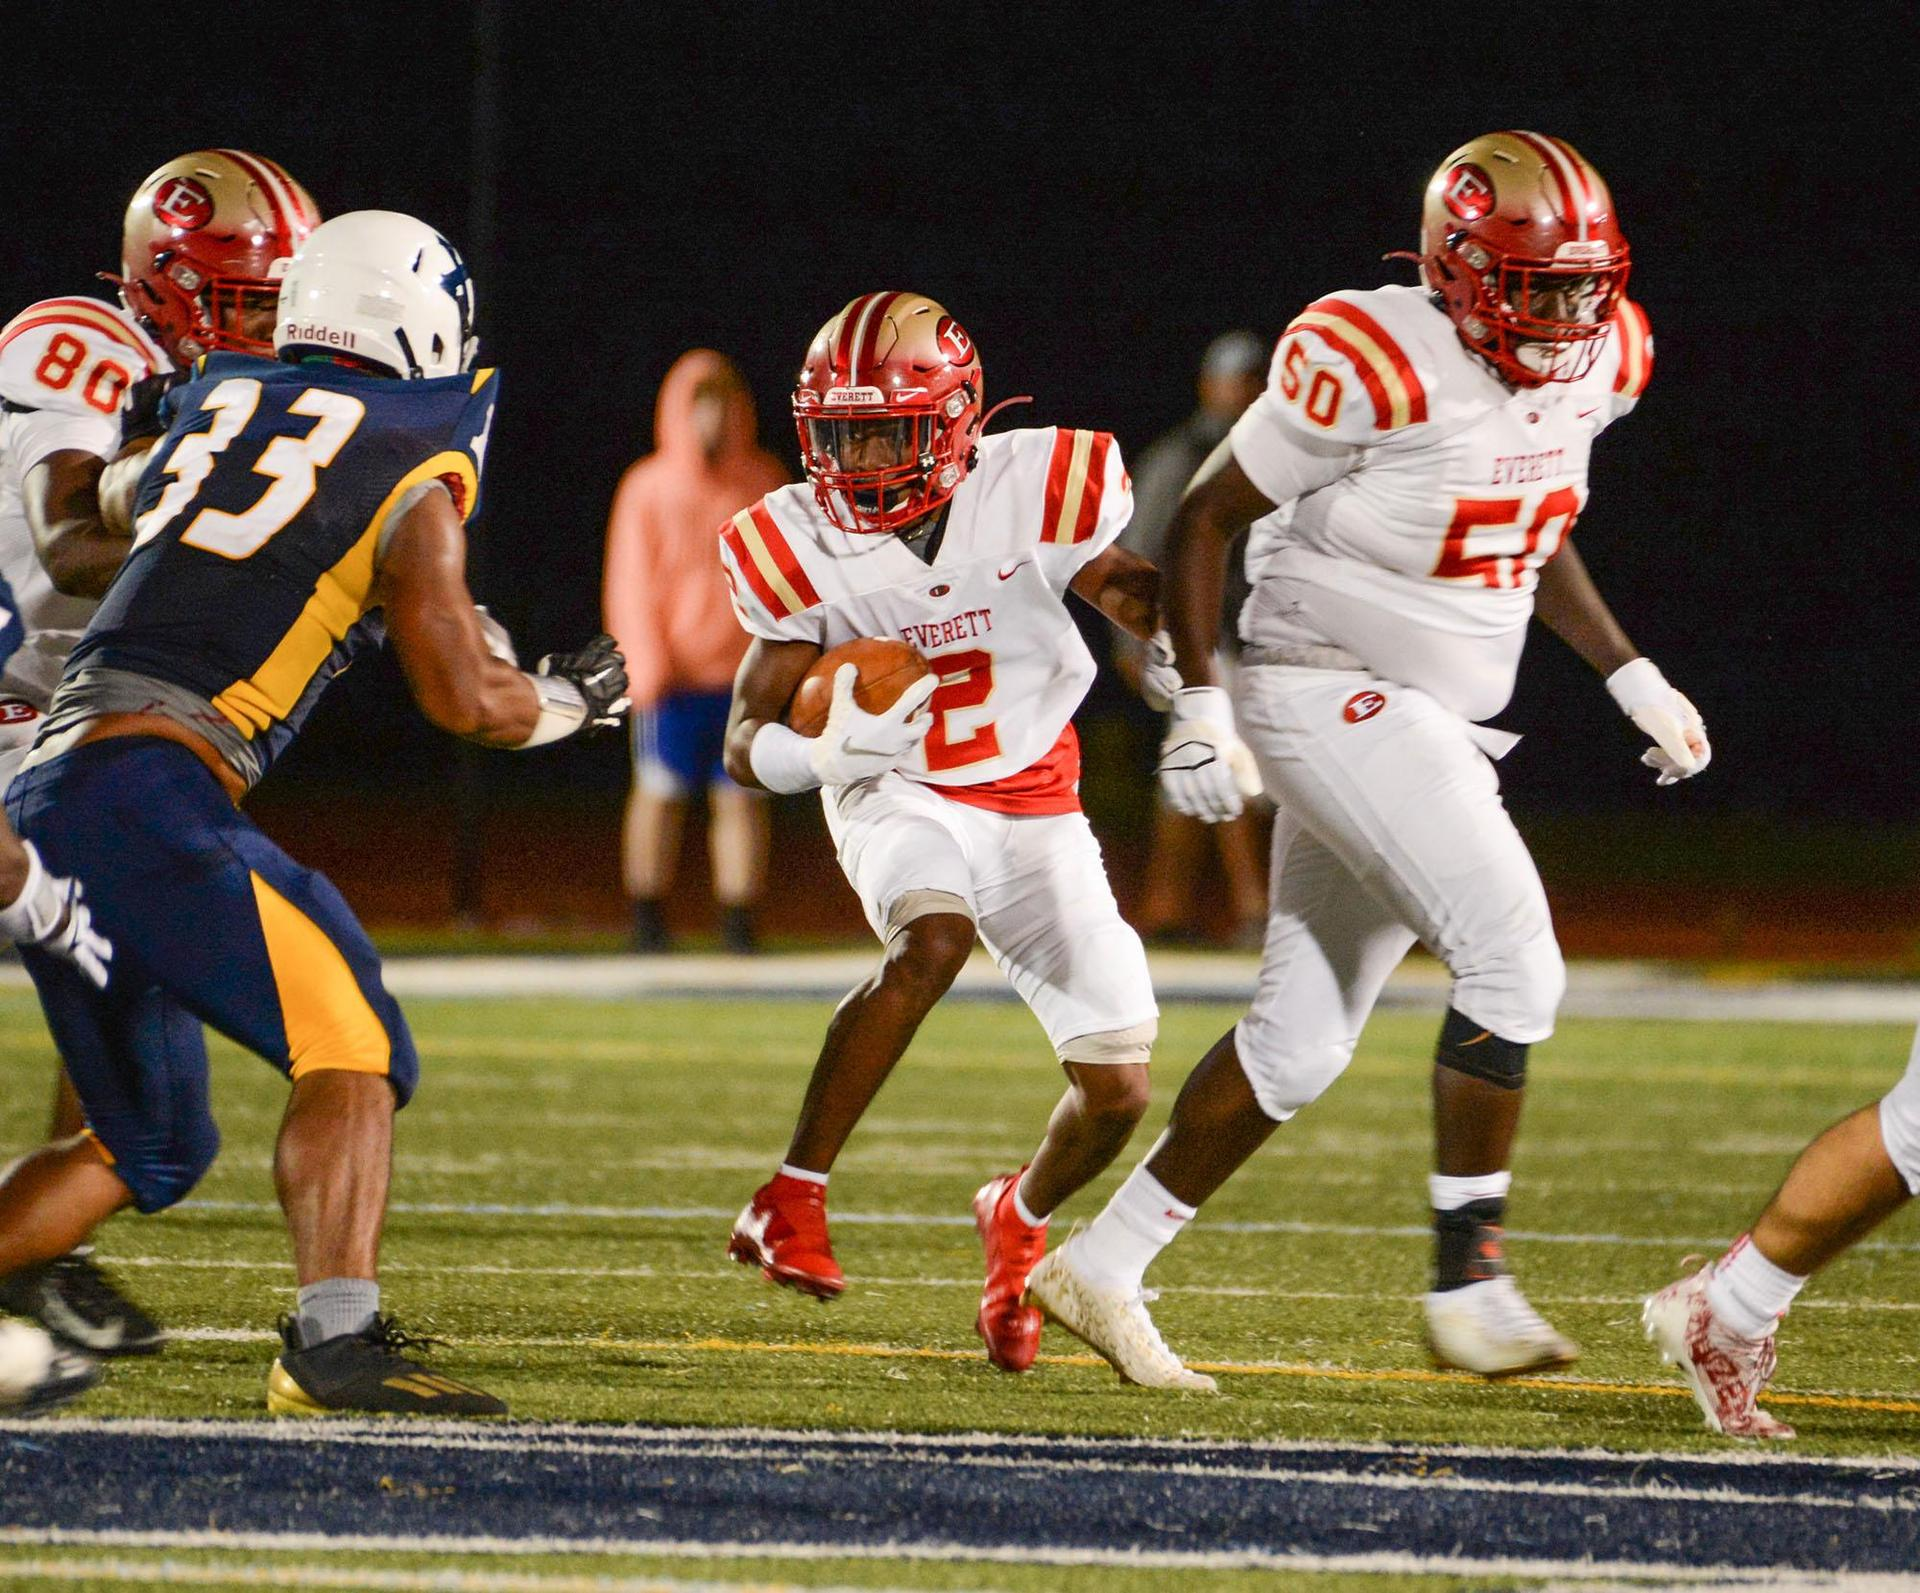 An EHS running back looks for running room as he approaches the line of scrimmage